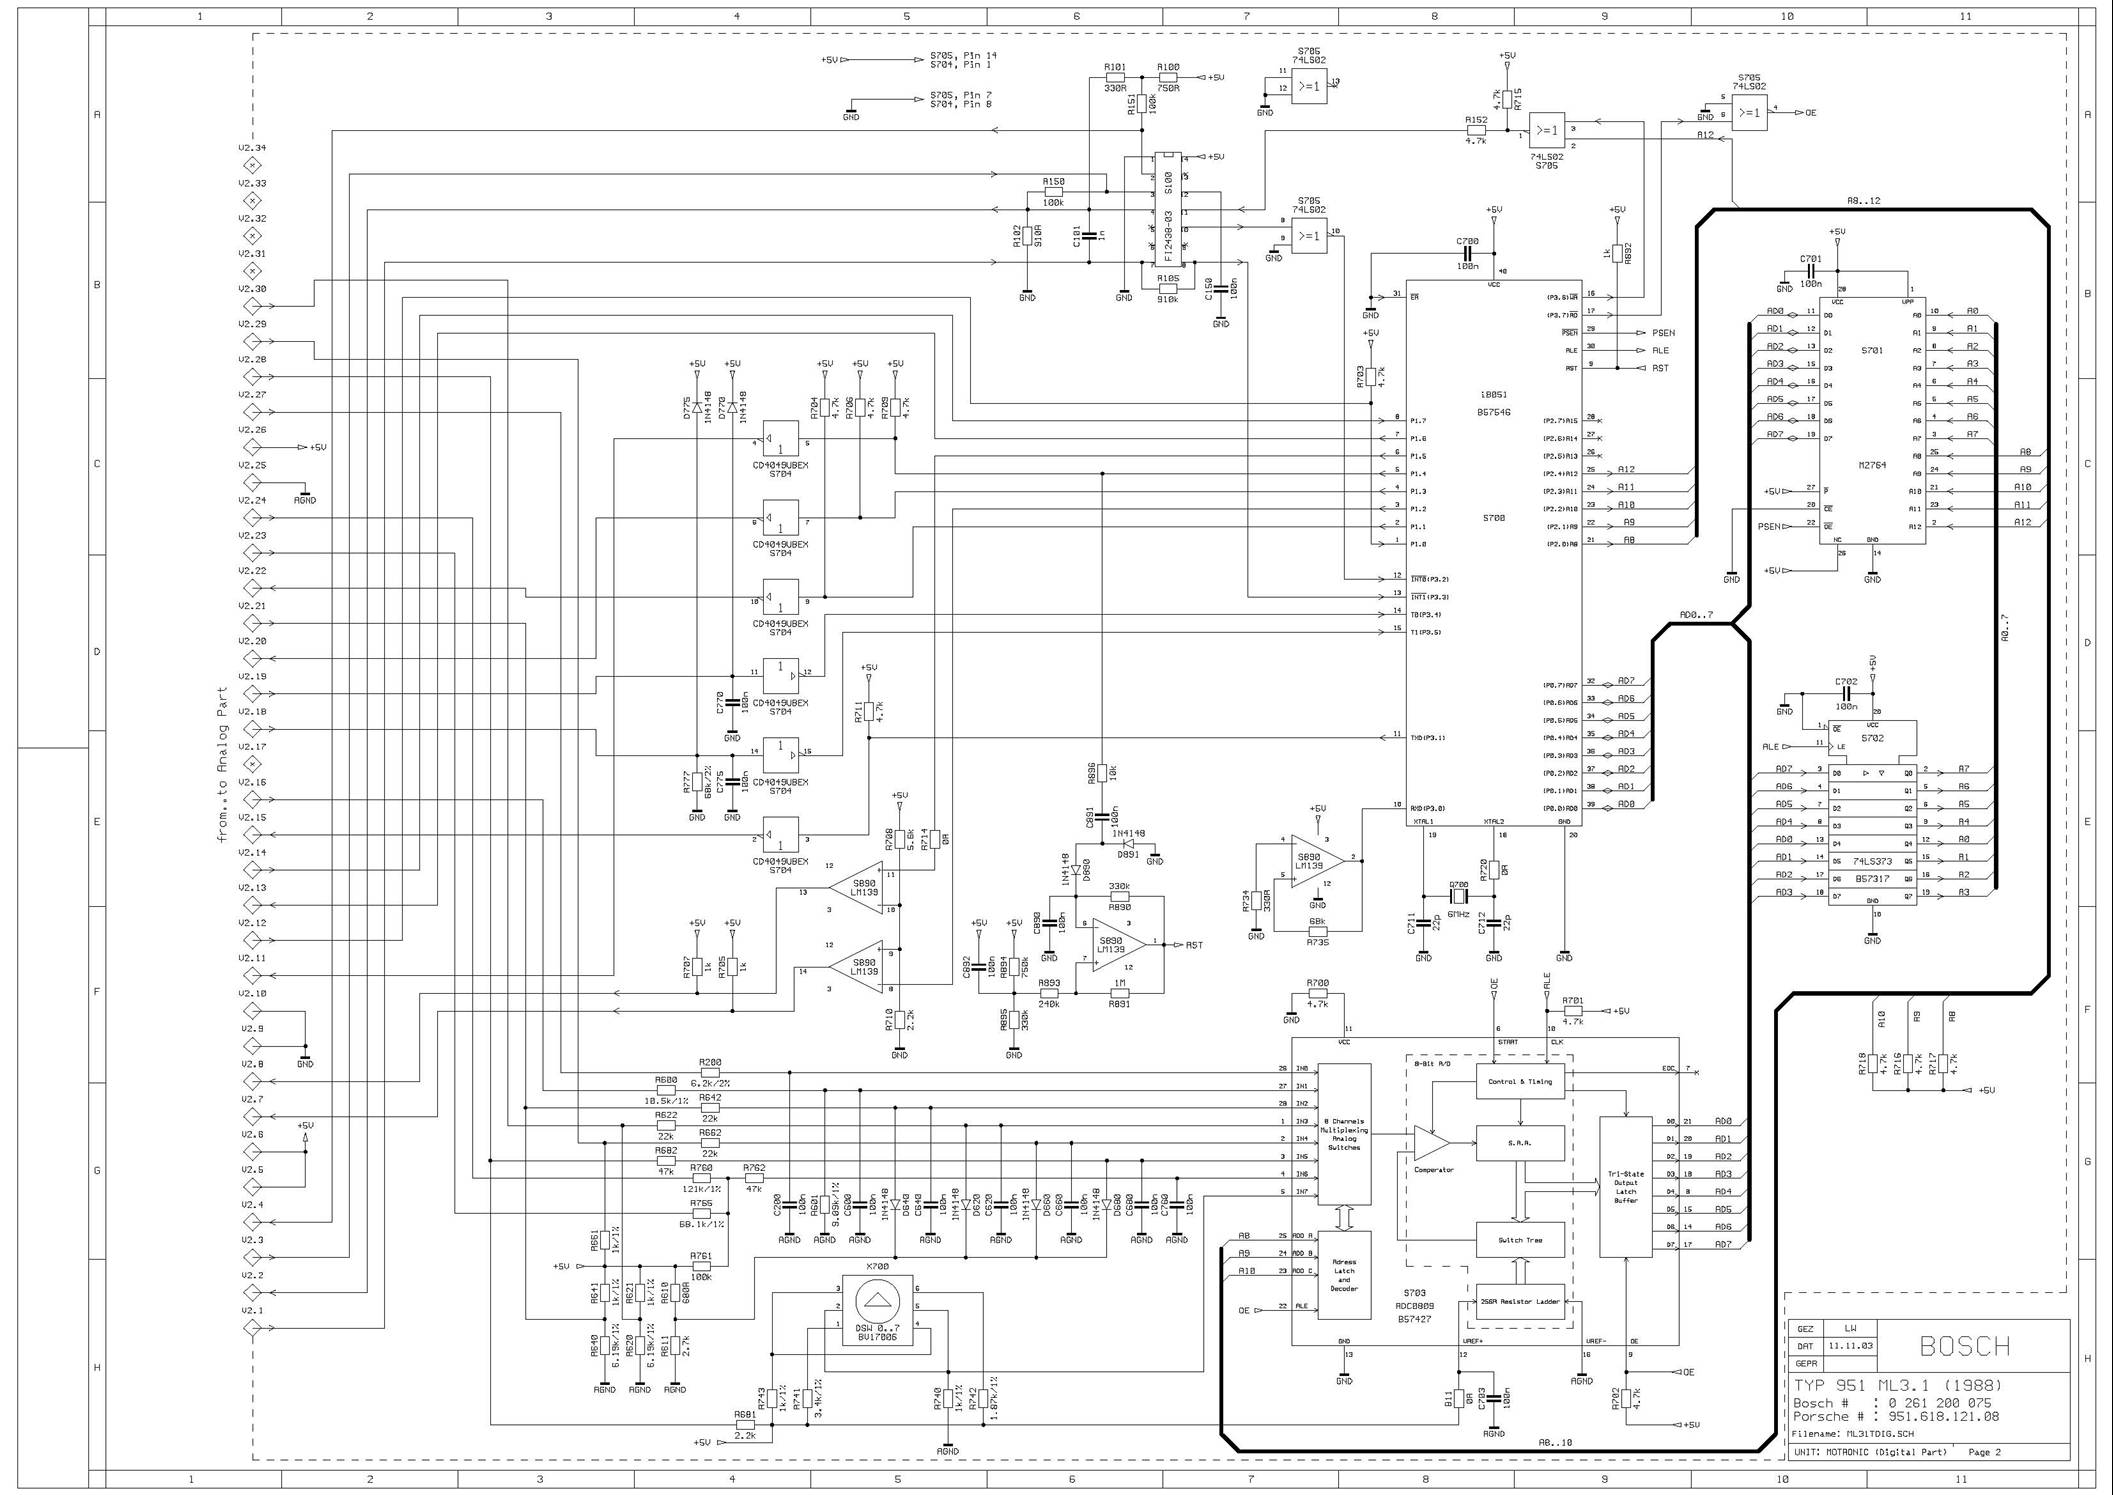 944tdme b dme wiring diagram 944 turbo porsche 944 wiring diagram at virtualis.co